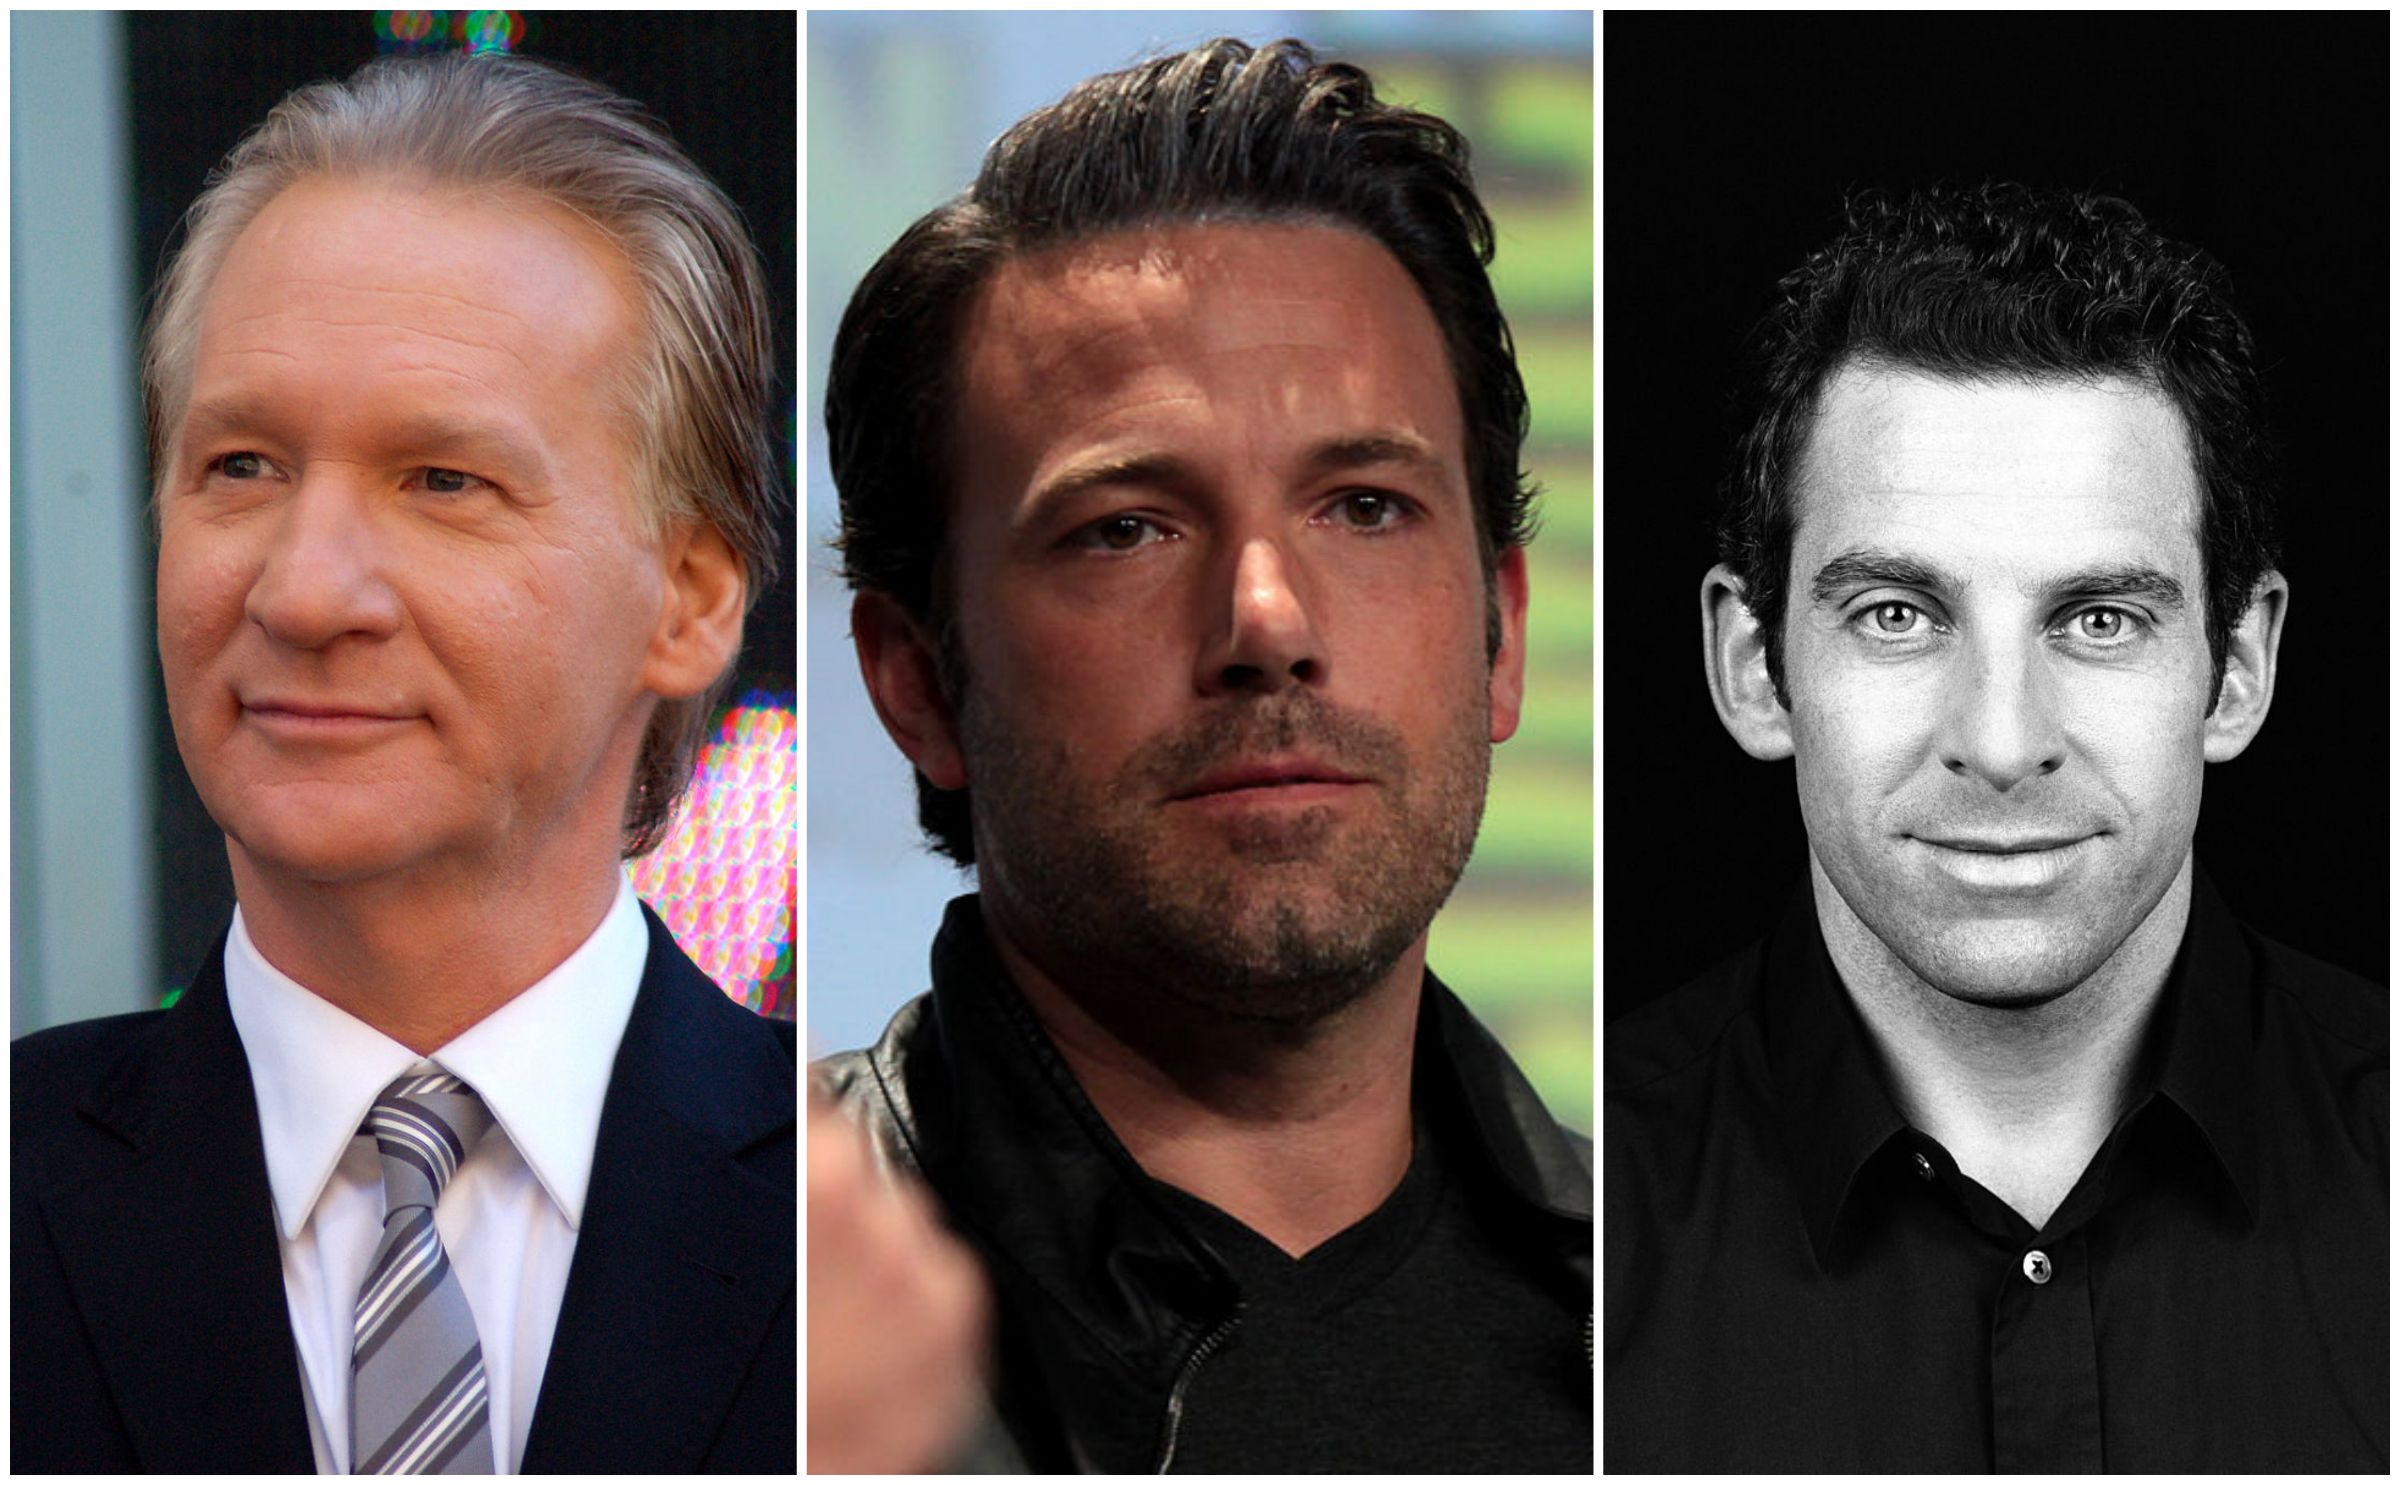 """Ben Affleck"" by Gage Skidmore [CC-BY-SA-2.0] ""Bill Maher"" by Angela George [CC-BY-3.0] Sam Harris [GFDL (http://www.gnu.org/copyleft/fdl.html) or CC-BY-SA-3.0"